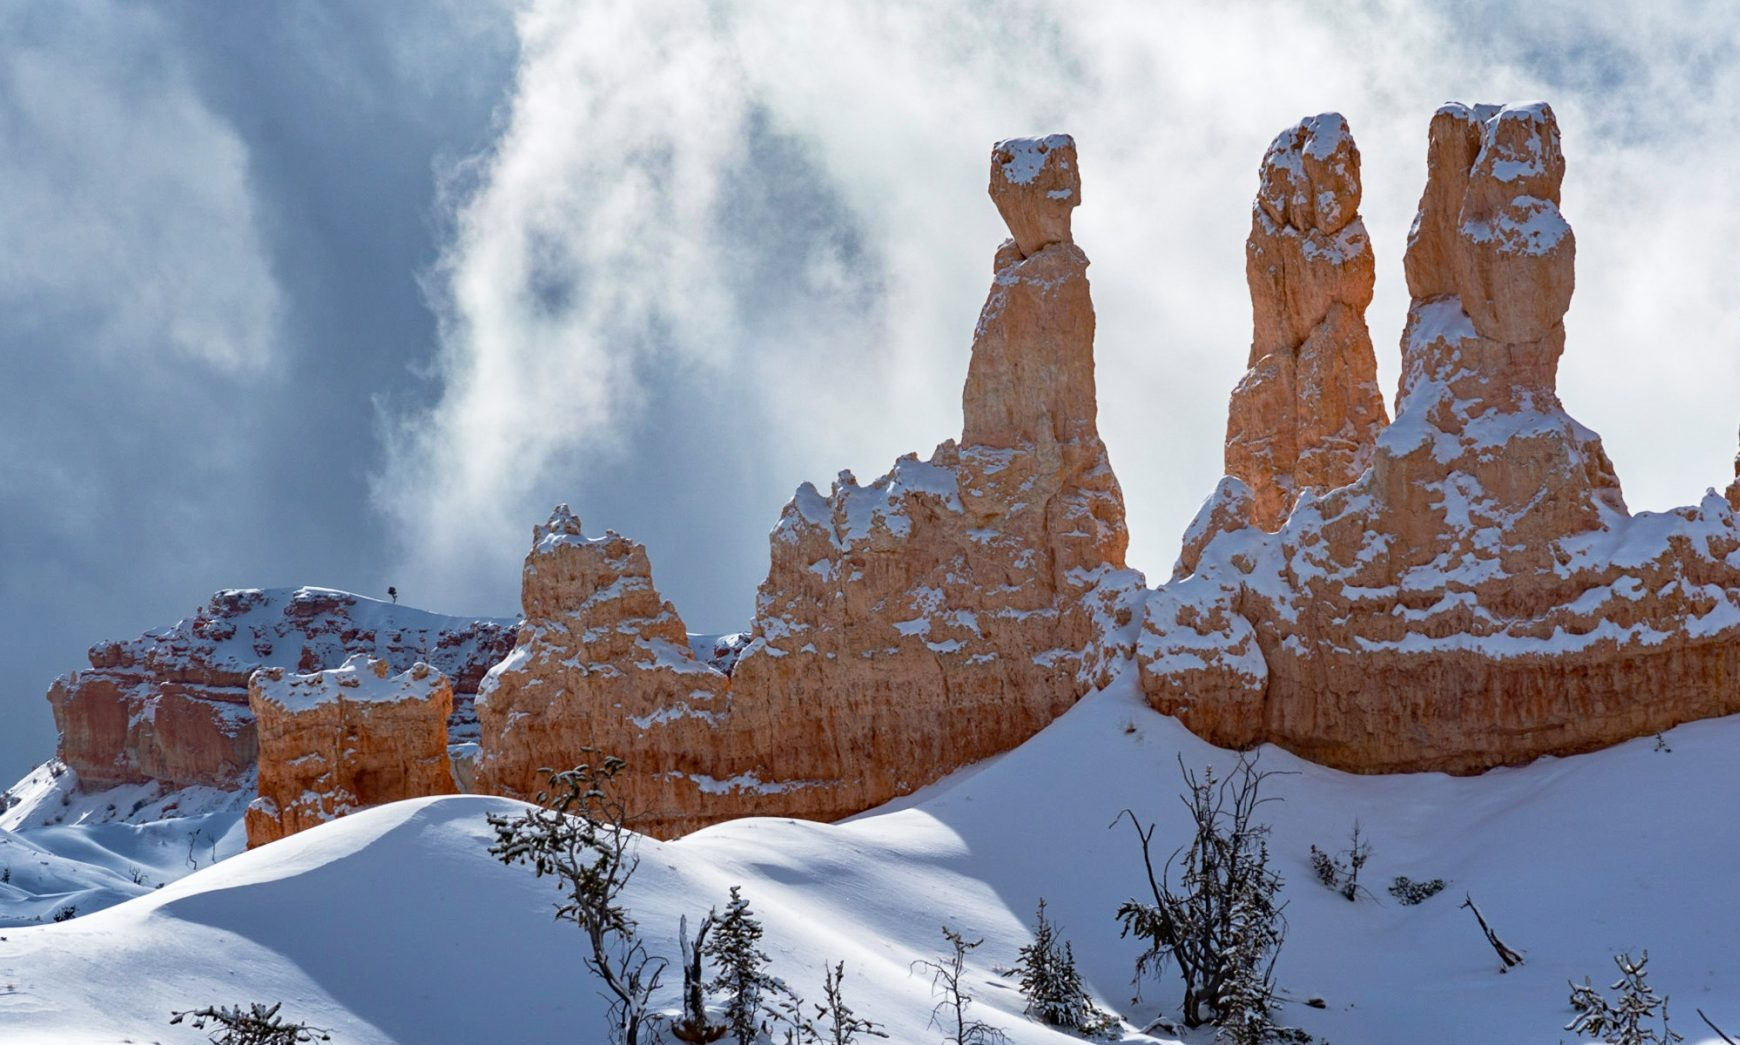 Bryce canyon photo tour with hoodoos in snow. Bryce Canyon in Winter with snow and sunshine.